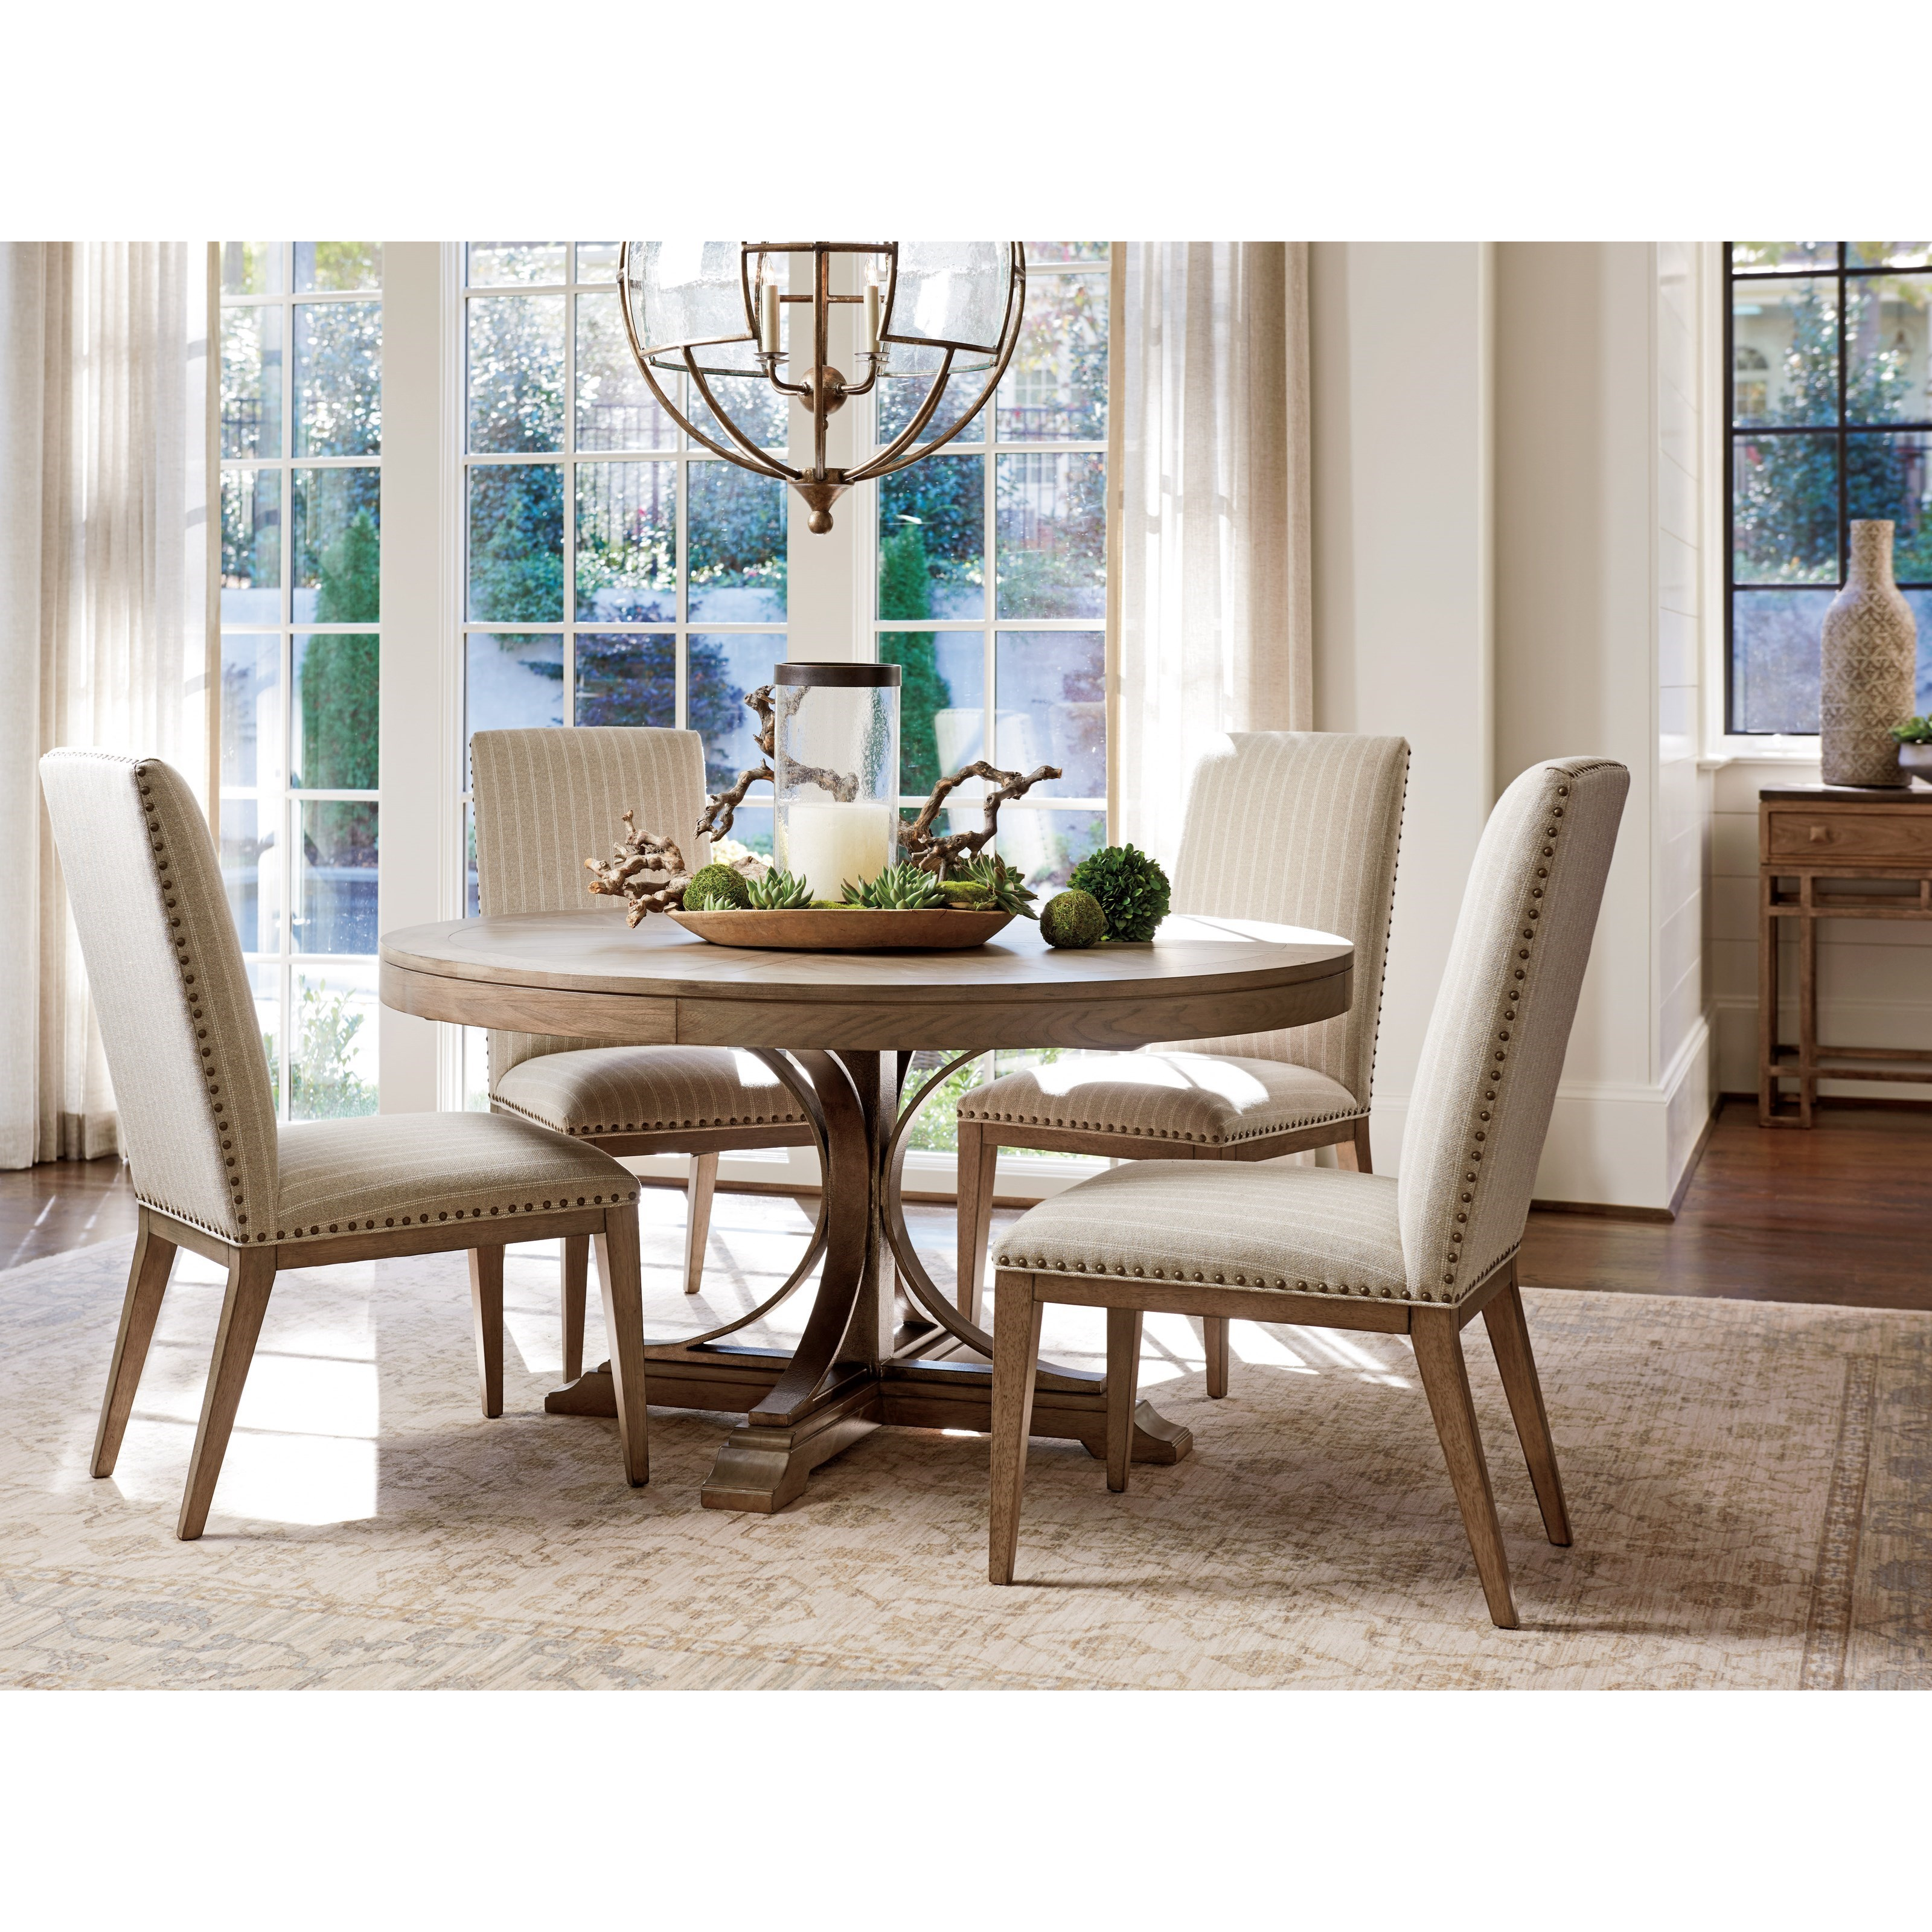 tommy bahama home cypress point 561 875c atwell round dining table with extension leaf baer 39 s. Black Bedroom Furniture Sets. Home Design Ideas